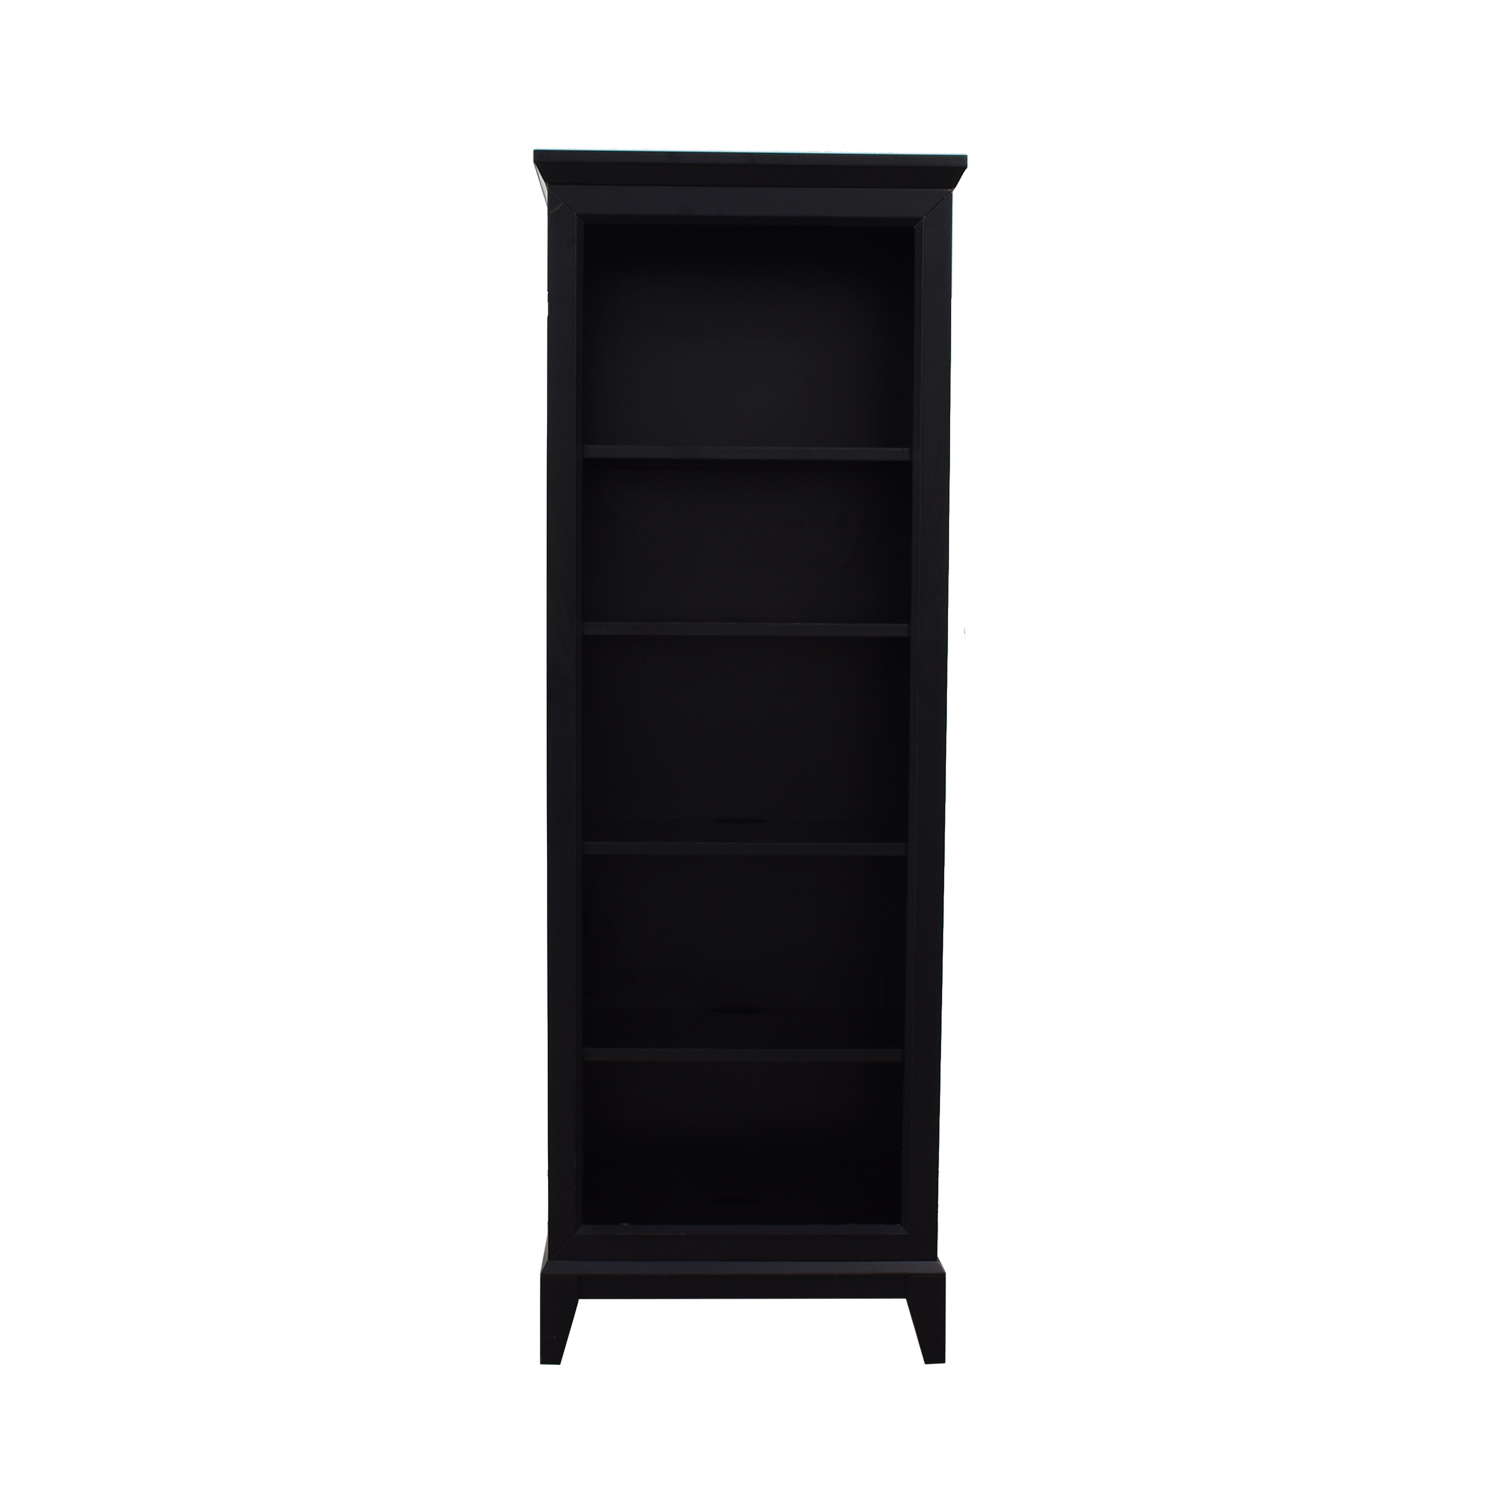 buy Crate & Barrel Paterson Bookcase Crate & Barrel Bookcases & Shelving